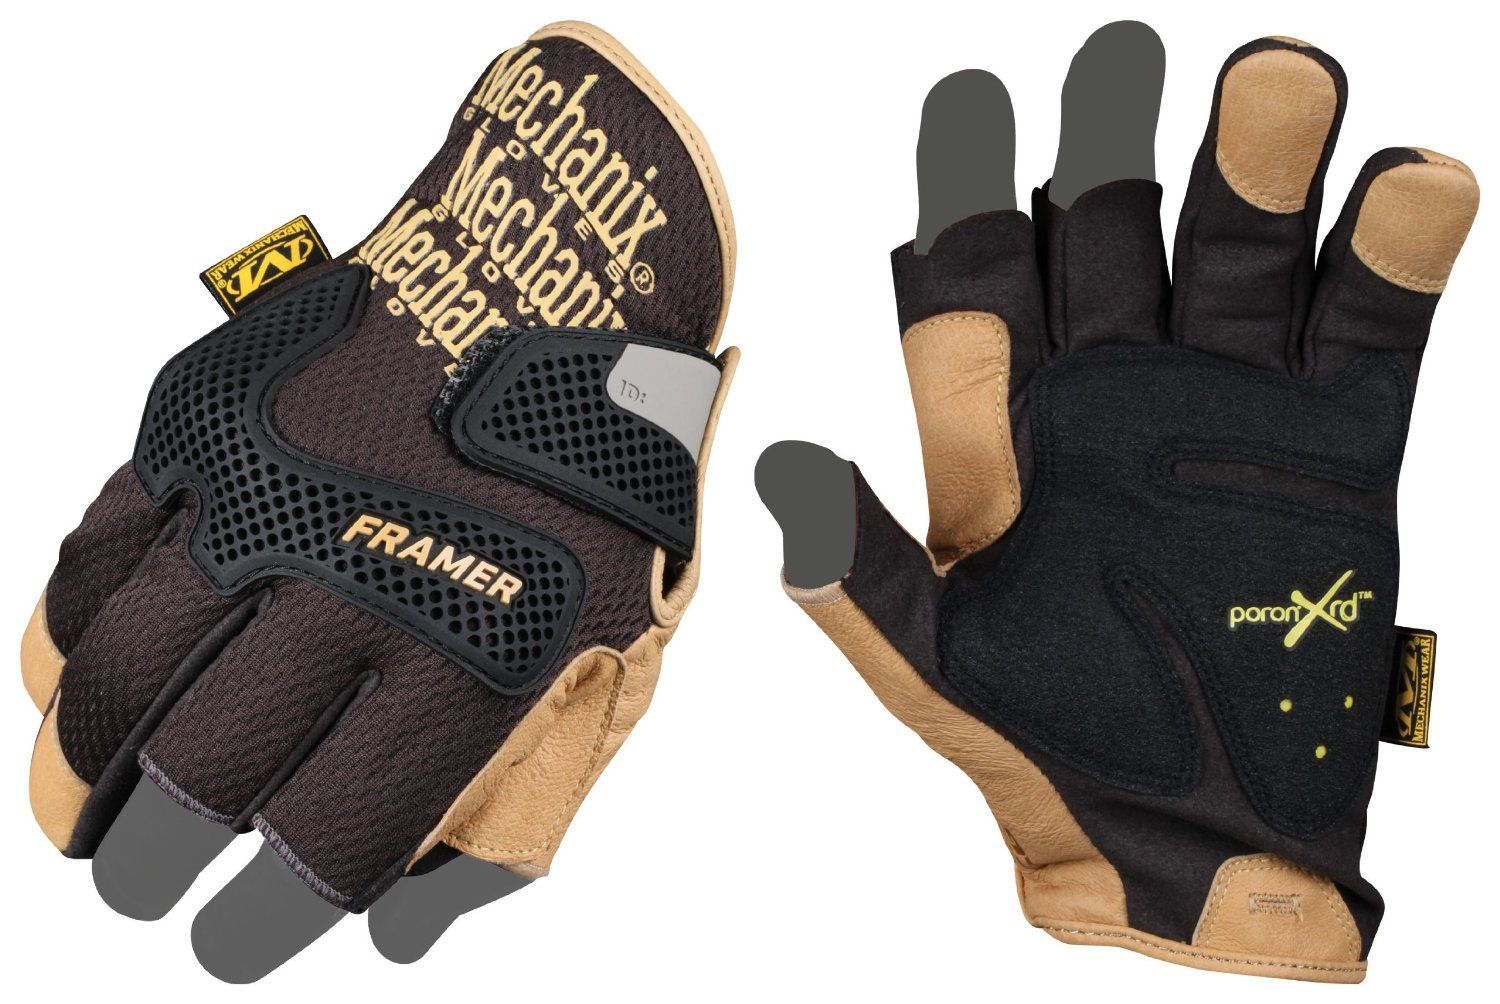 Offers your hand protection while trekking, building, or